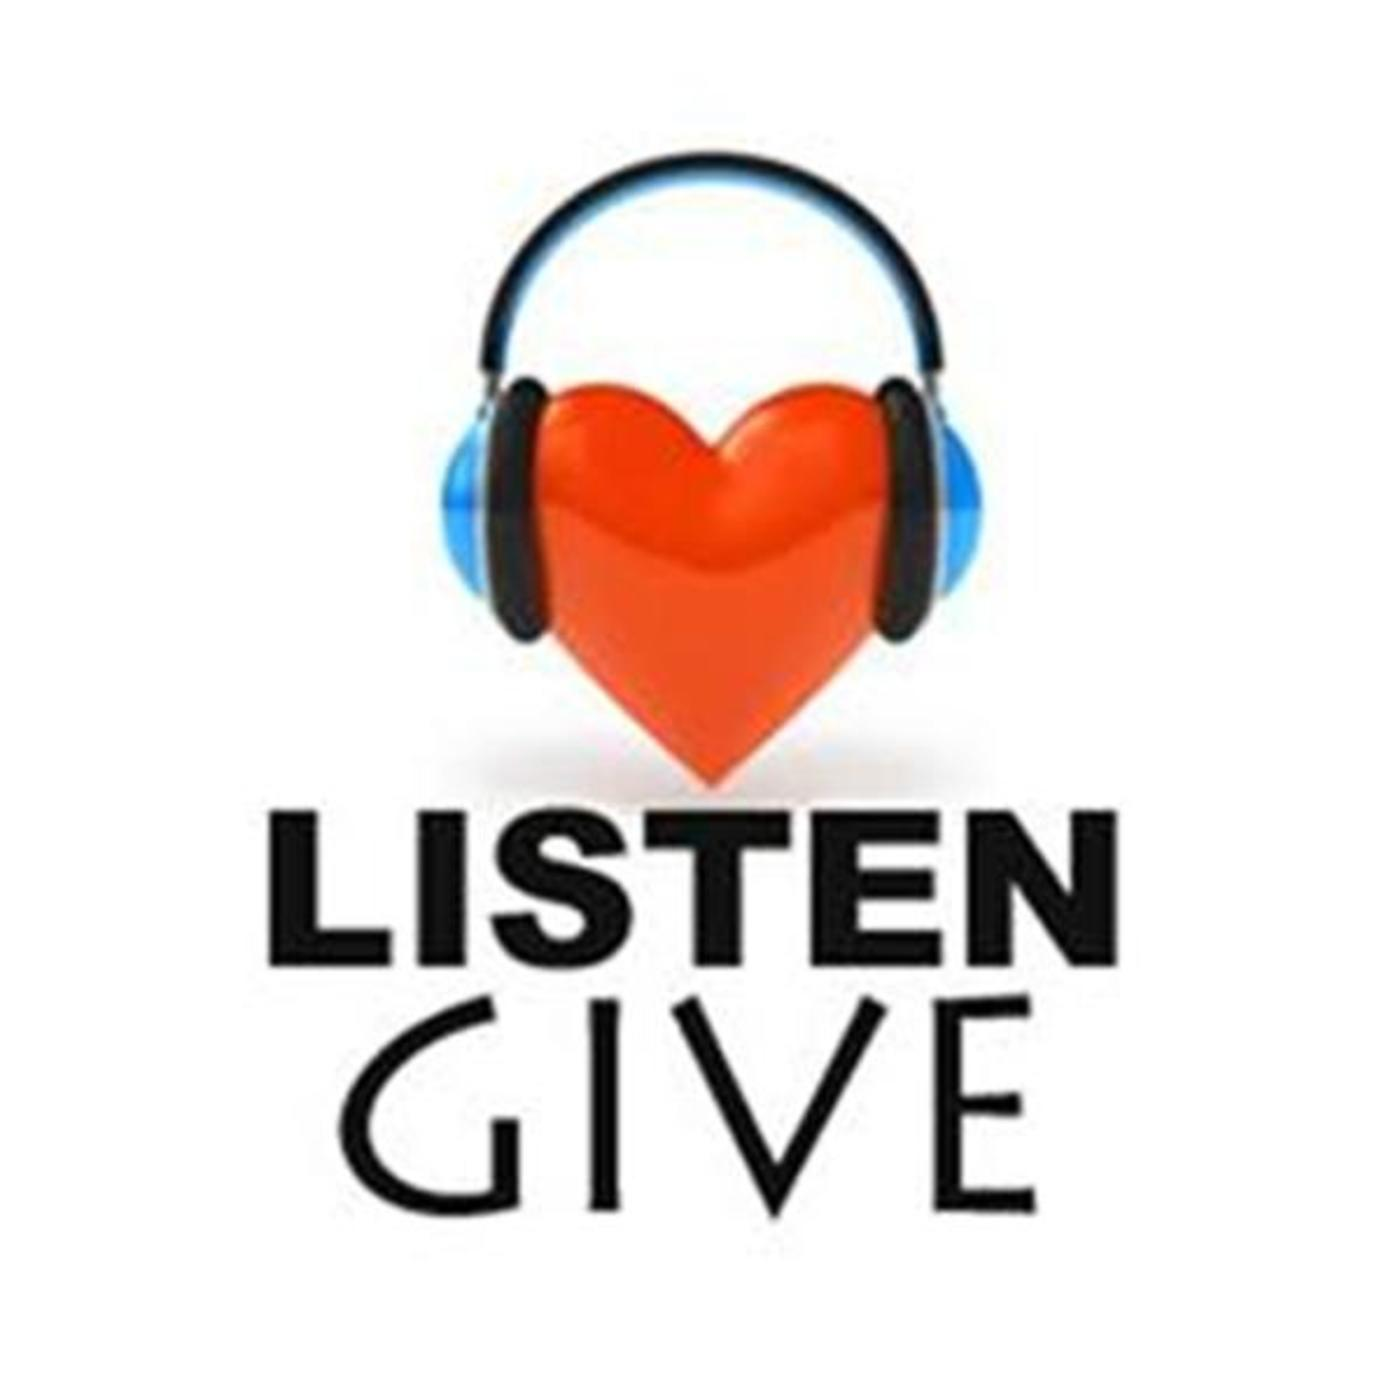 Listen Give Live